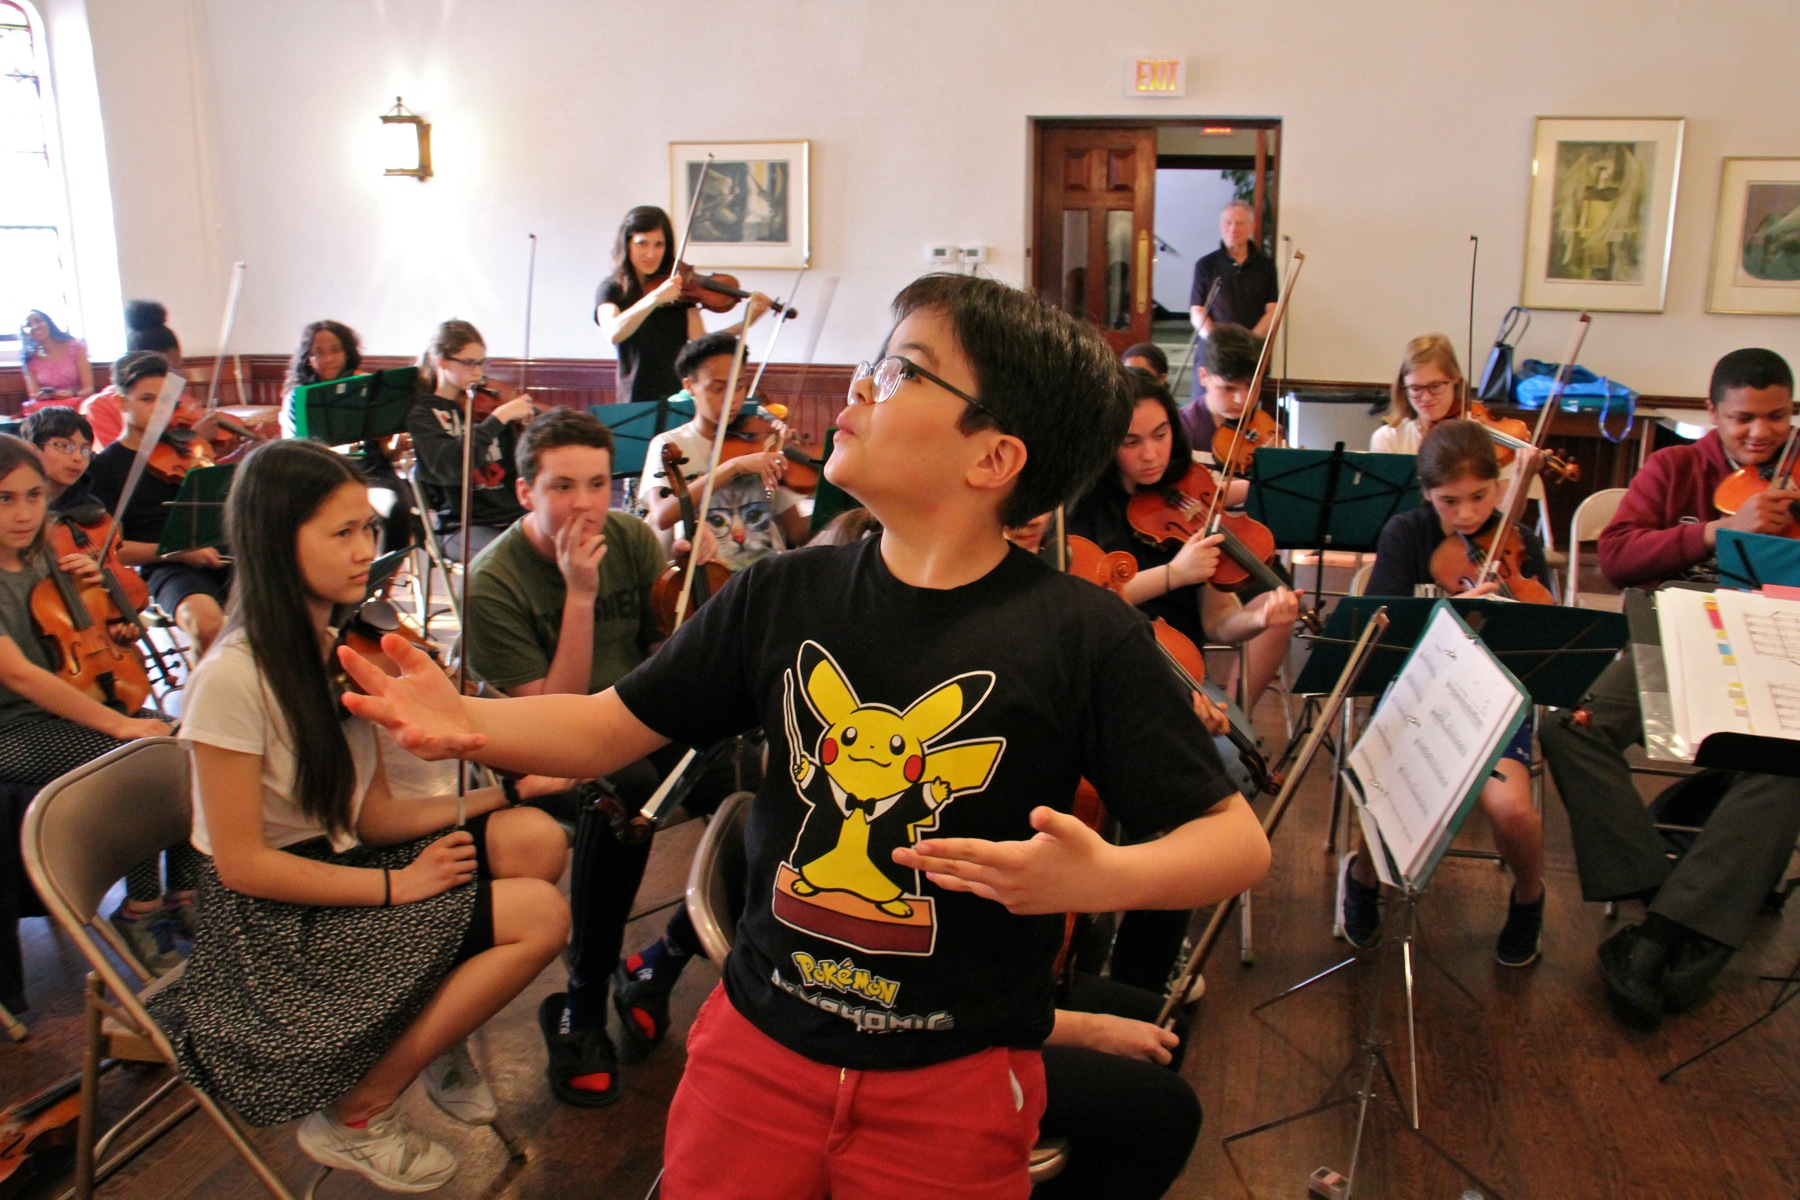 Cyrano Rosentrater, 10, whistles his part during a Musicopia rehearsal at the First Presbyterian Church in Philadelphia.